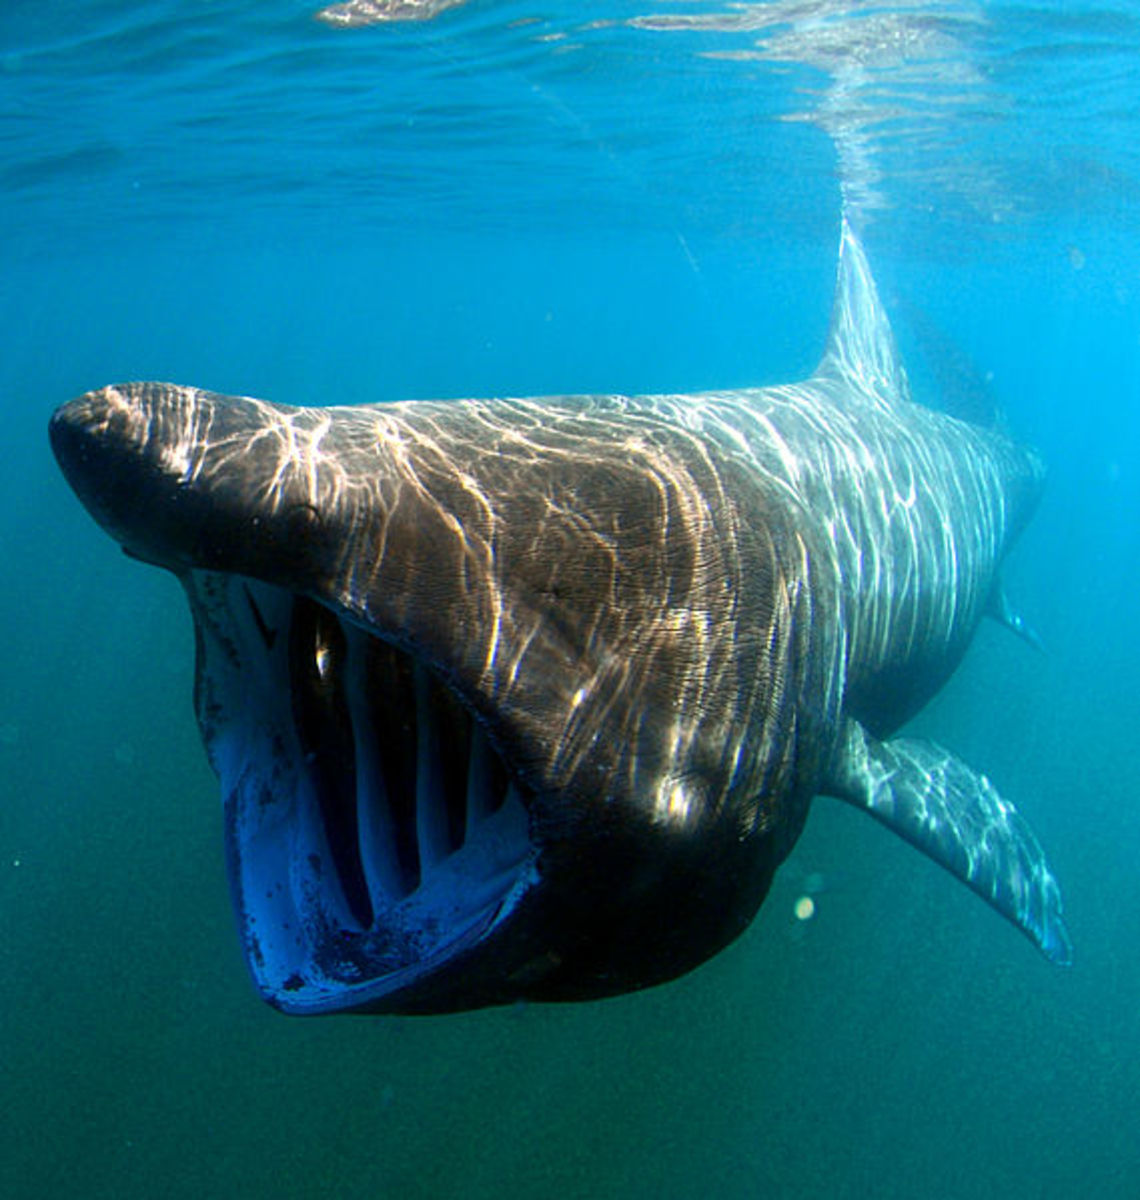 The basking shark is a massive creature, and subject to attack by lampreys